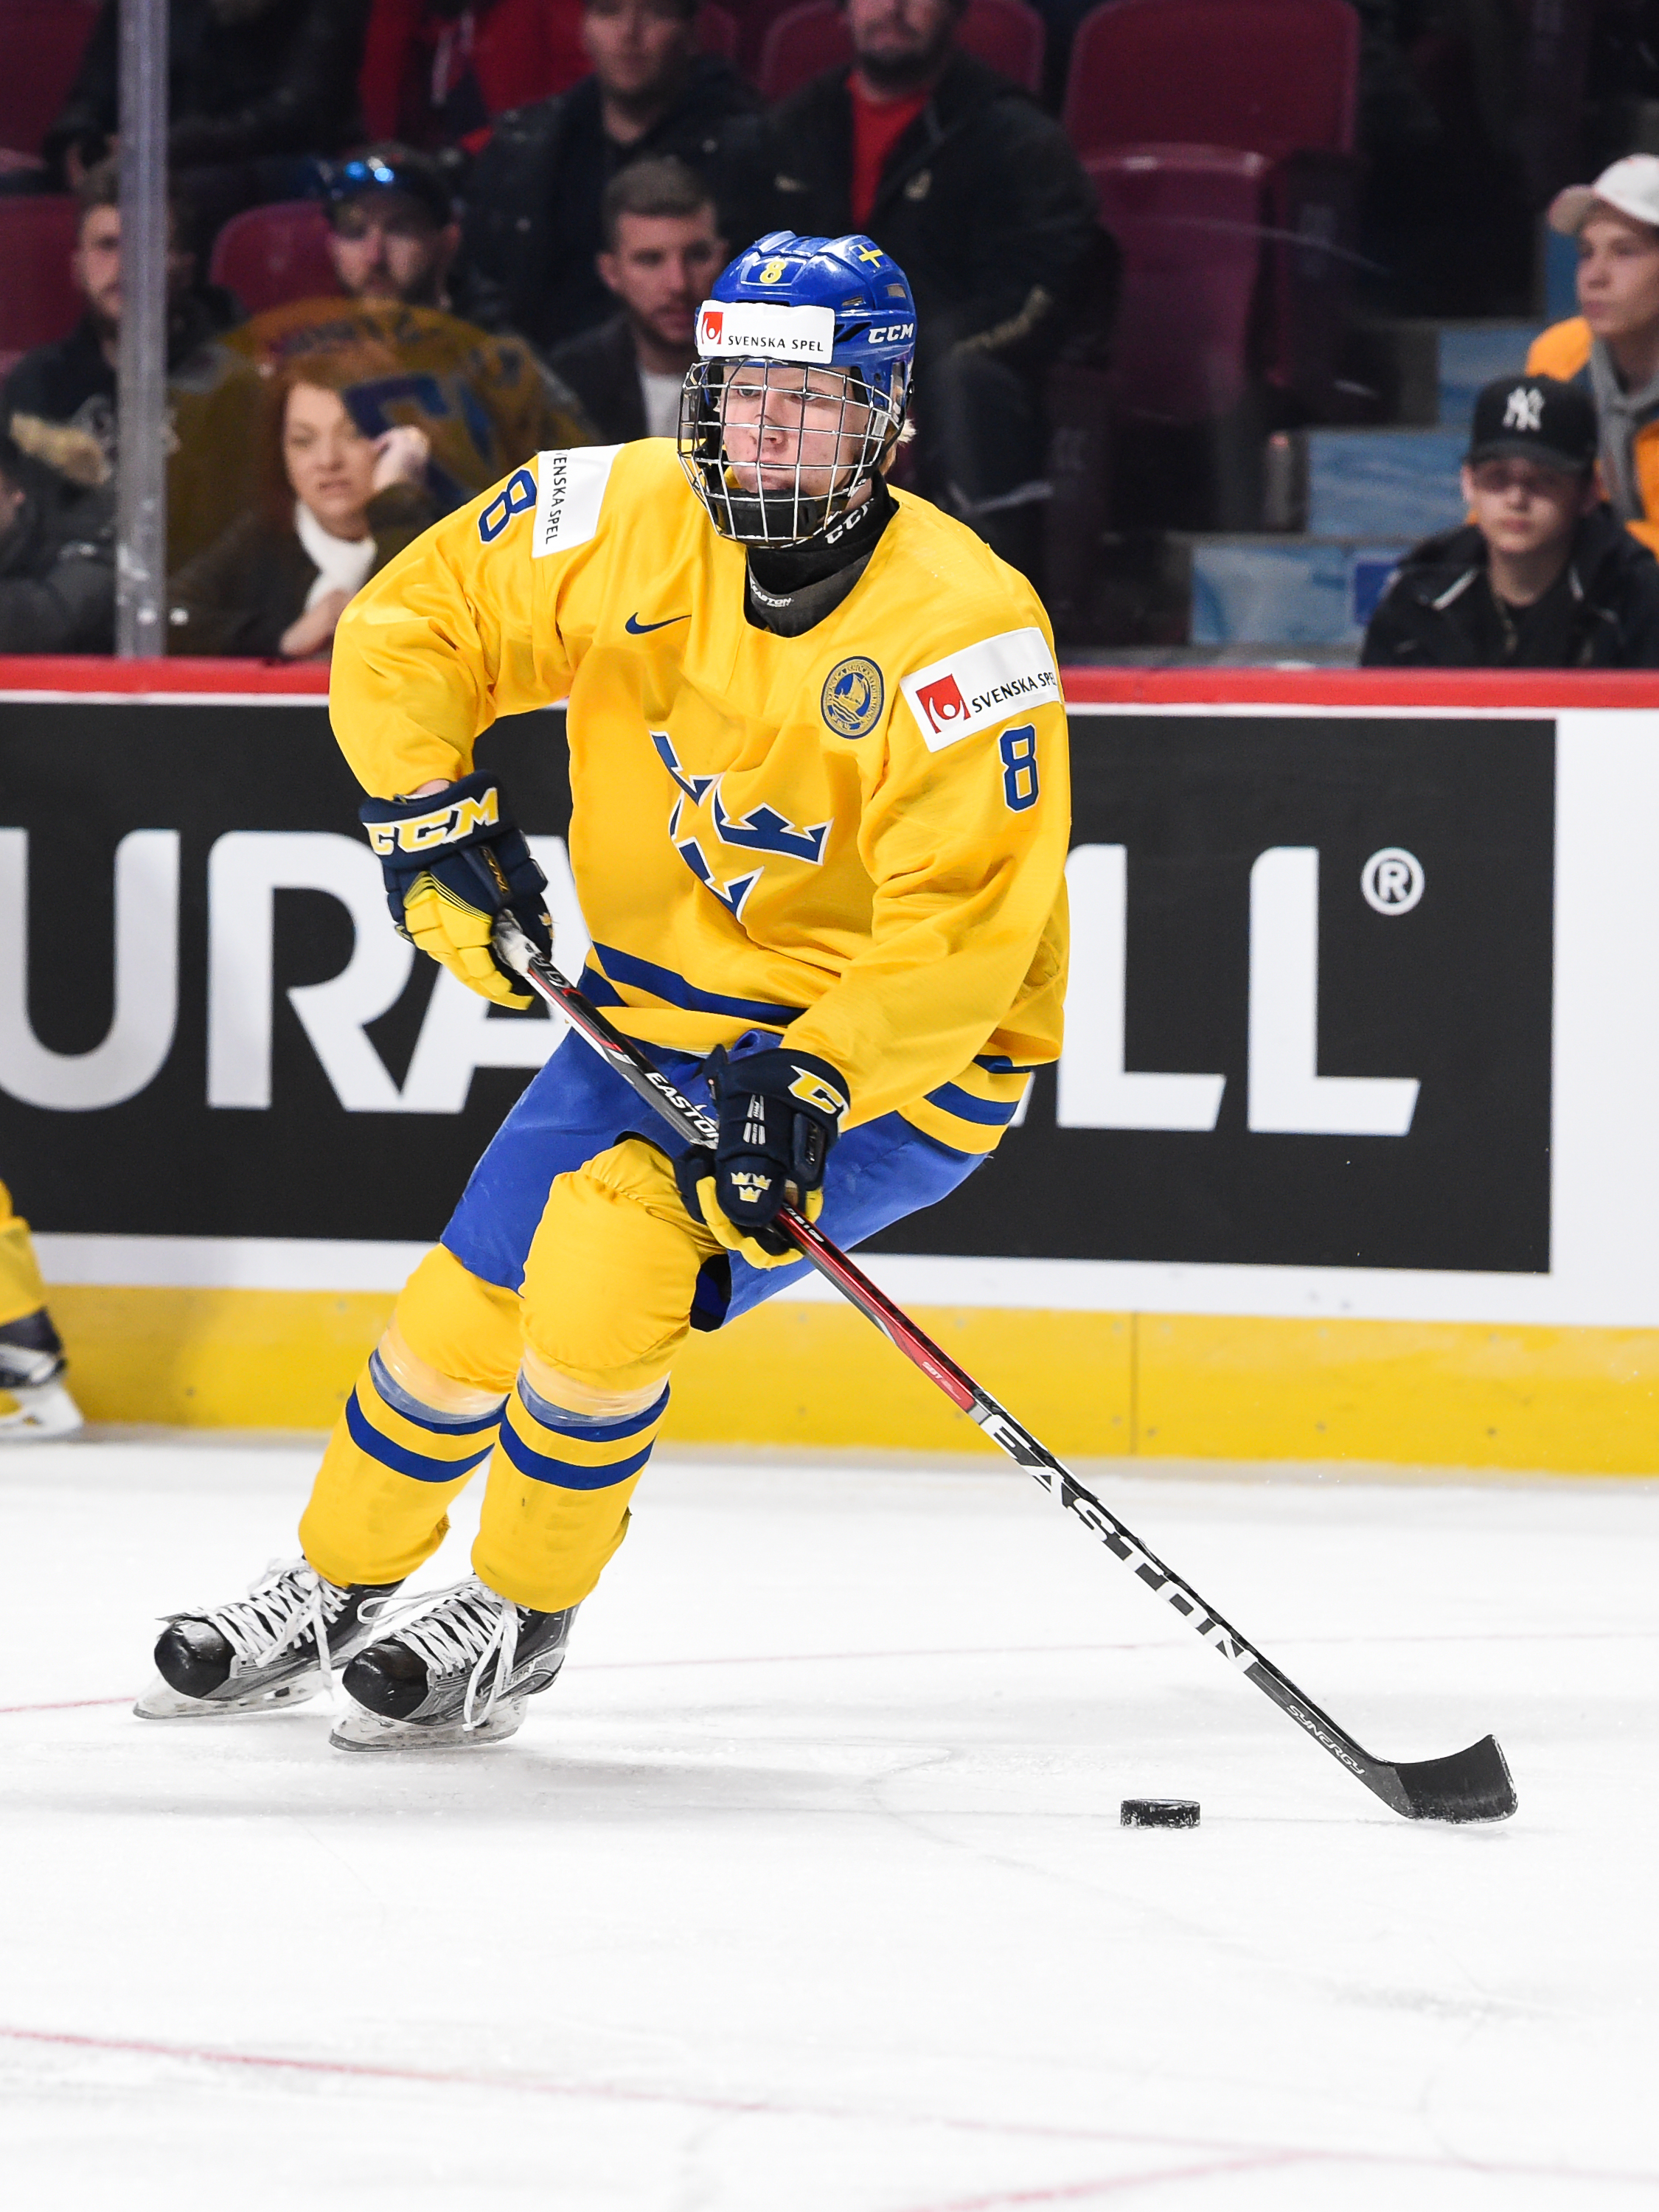 jerseys venta reino unido in addition to the kajala cup dahlin seems like a lock for team sweden at .